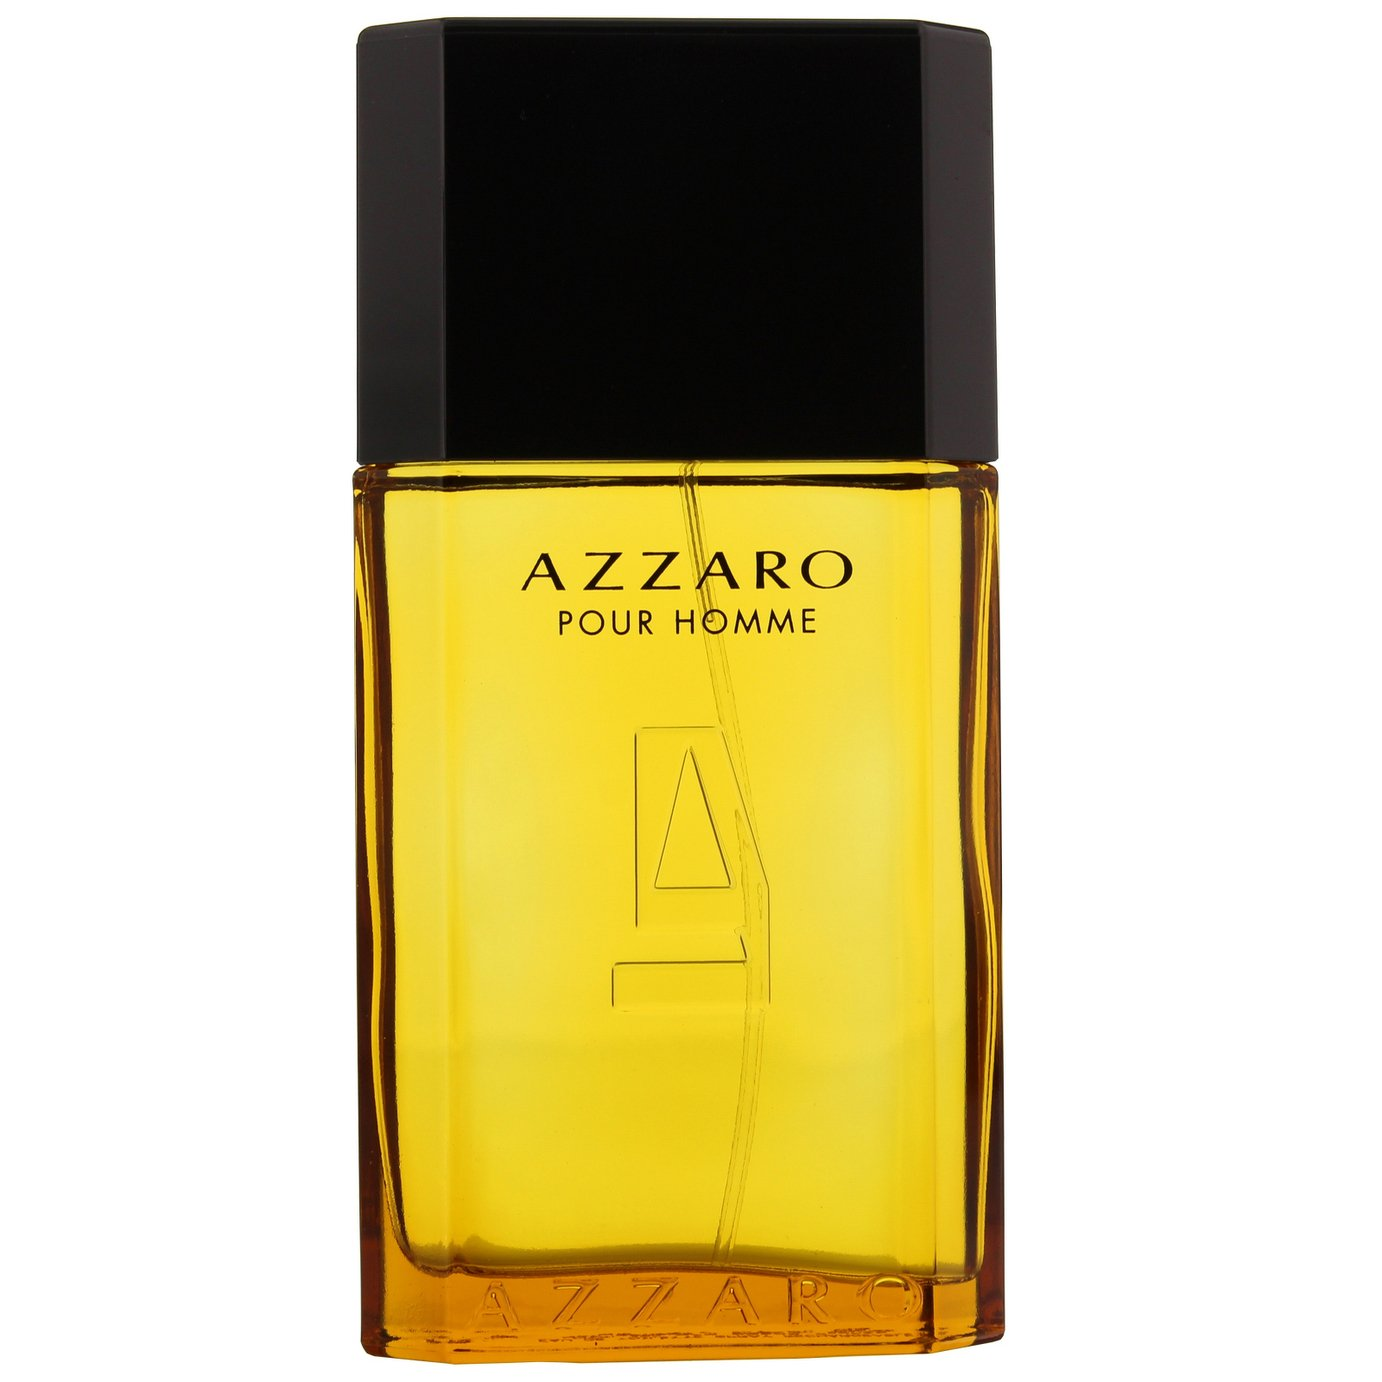 Azzaro Eau de Toilette for Men - 50ml